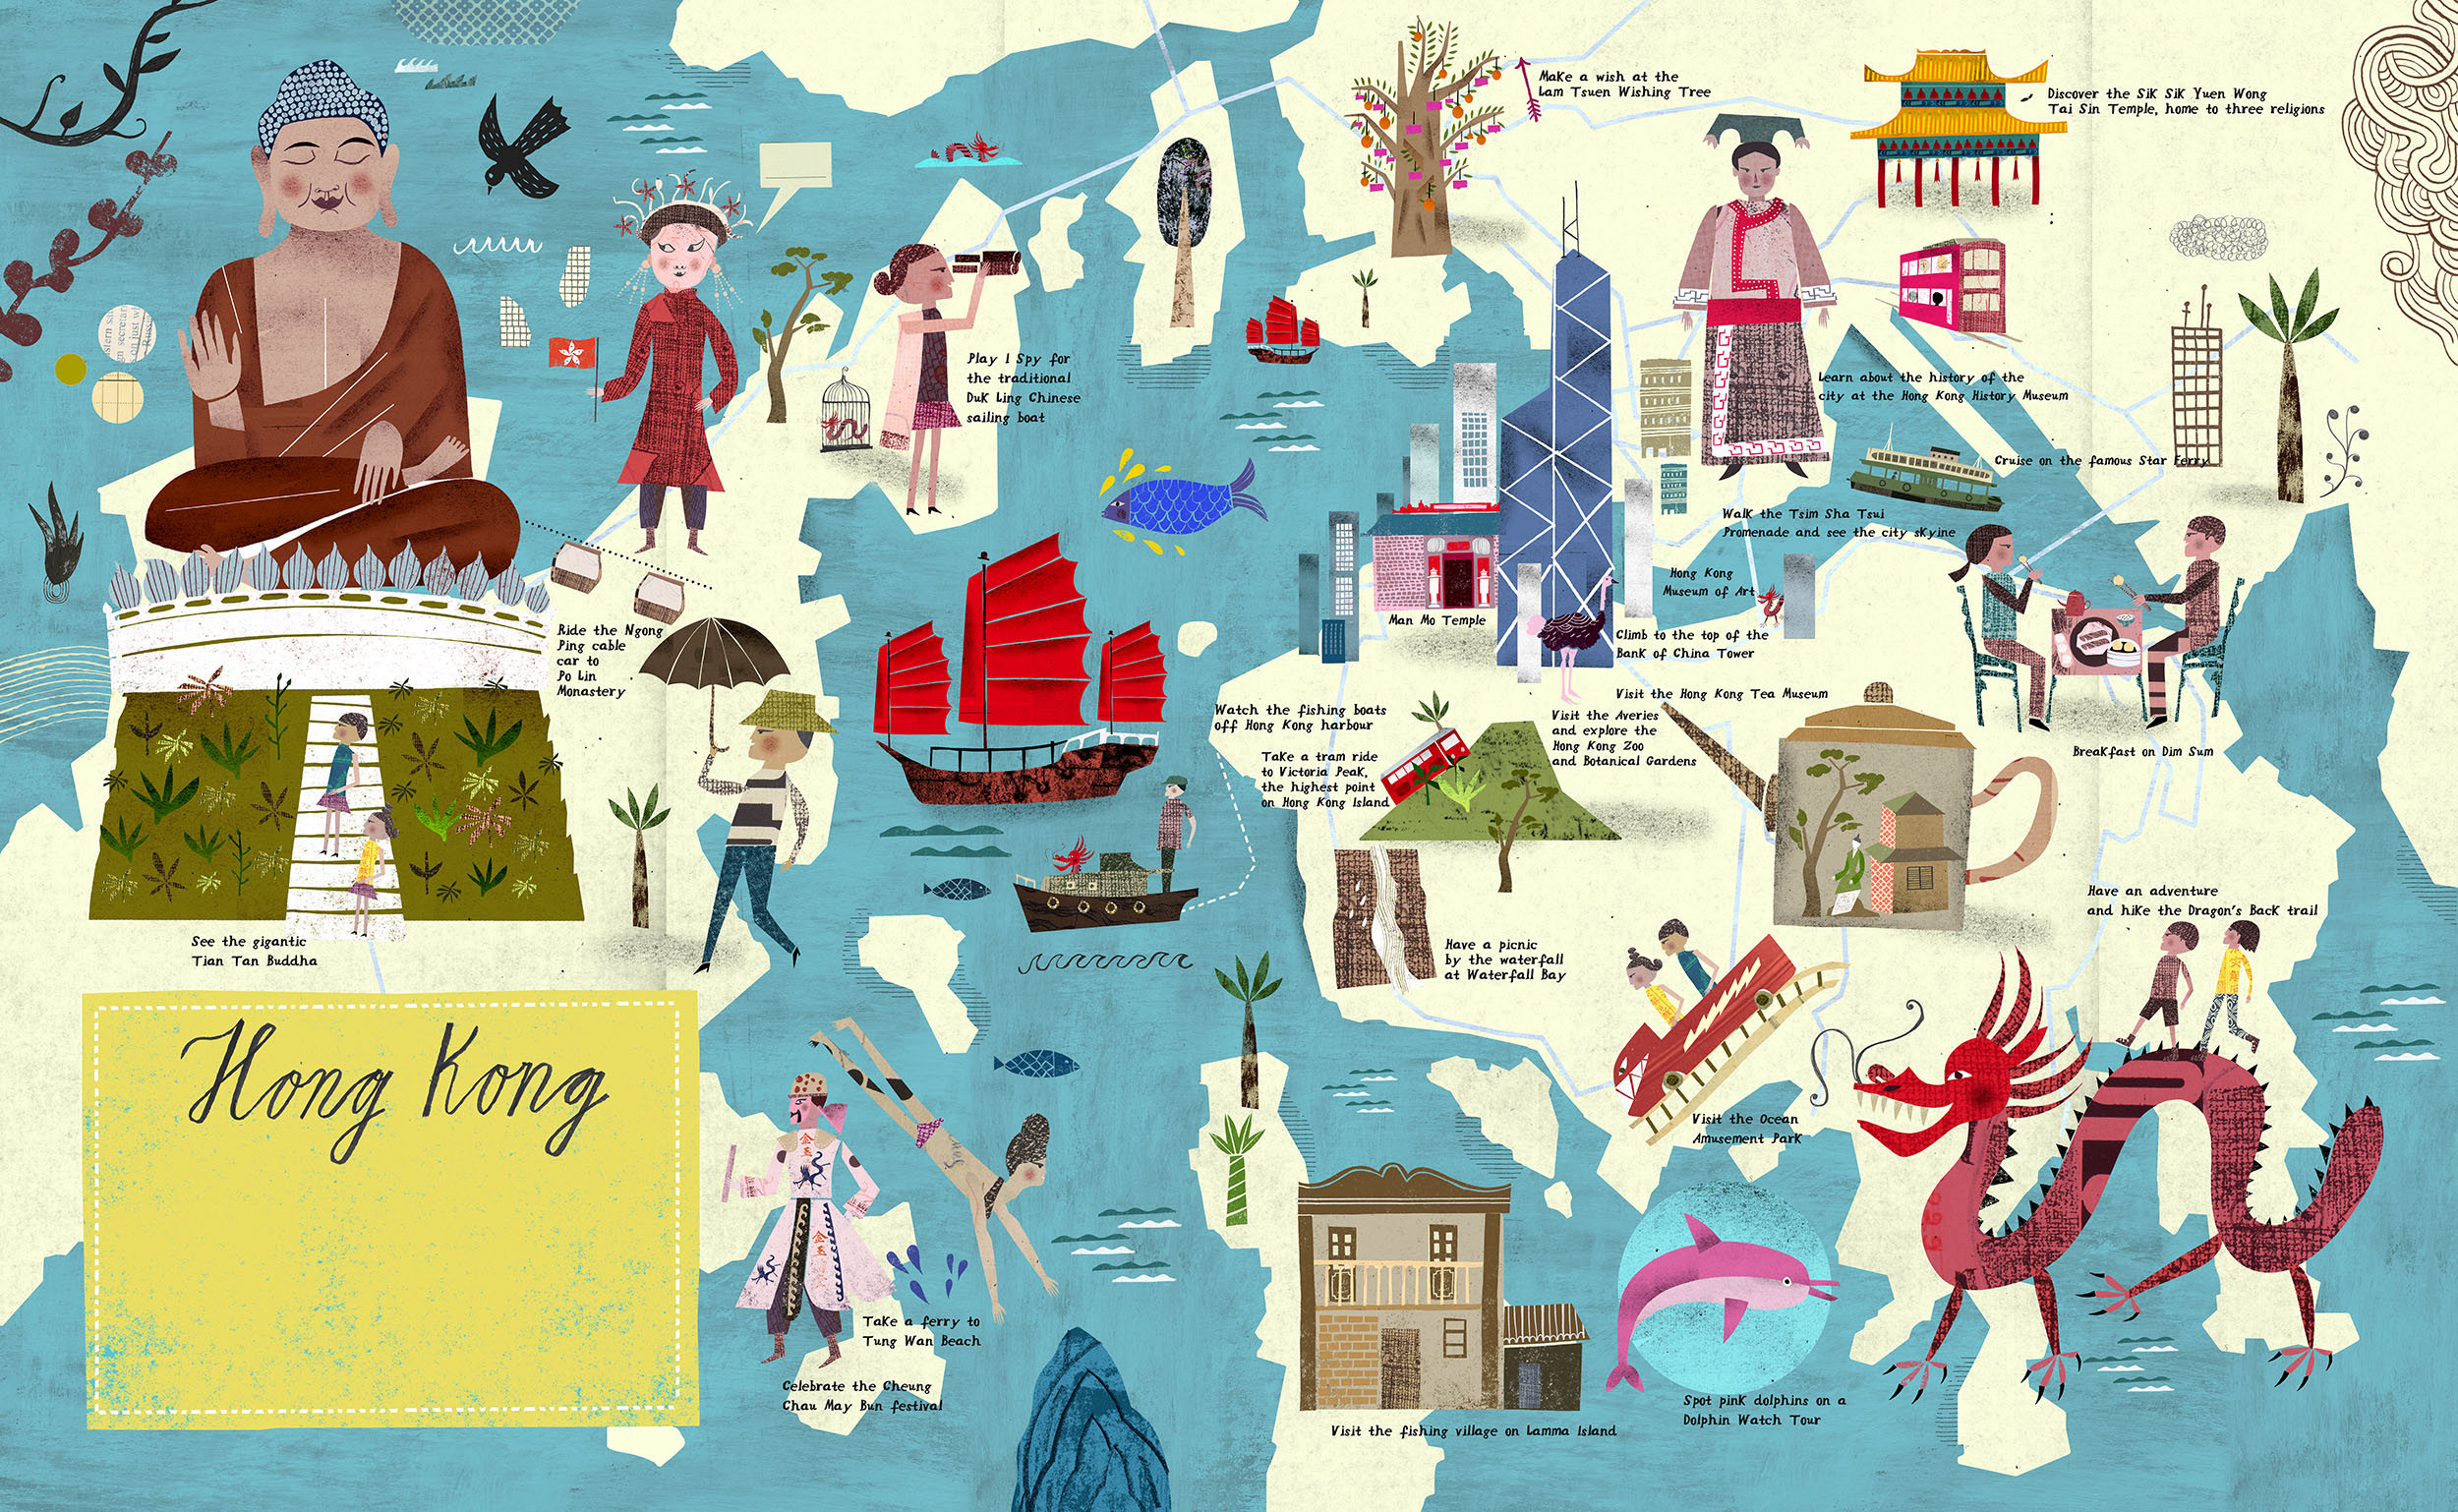 Portfolio – Maps – Martin Haake Illustrations on map art, map background, map making, map great britain, map of california and mexico, map app, map clipart, product illustration, map of victoria, map paper, map travel, map books, map of the south sewanee university, digital illustration, map cartoon, map of belfast and surrounding areas, map of spanish speaking world, map key, technical illustration, architectural illustration, medical illustration, map design, map of louisiana and mississippi, map infographic, map print,